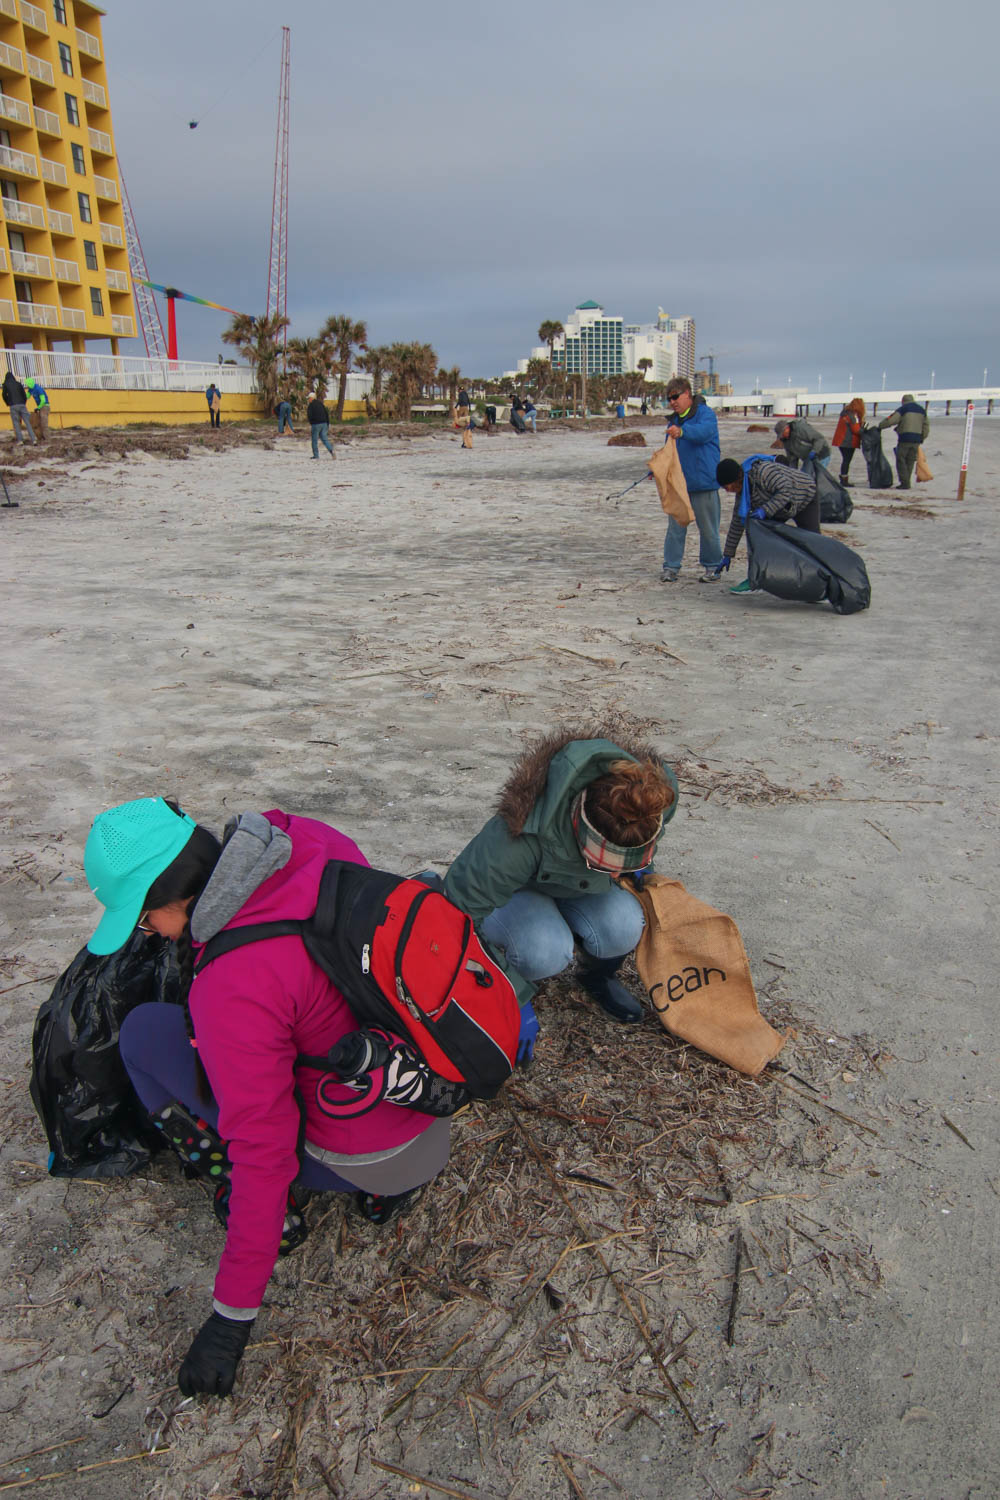 Daytona_Beach_Jan2017-8384.jpg